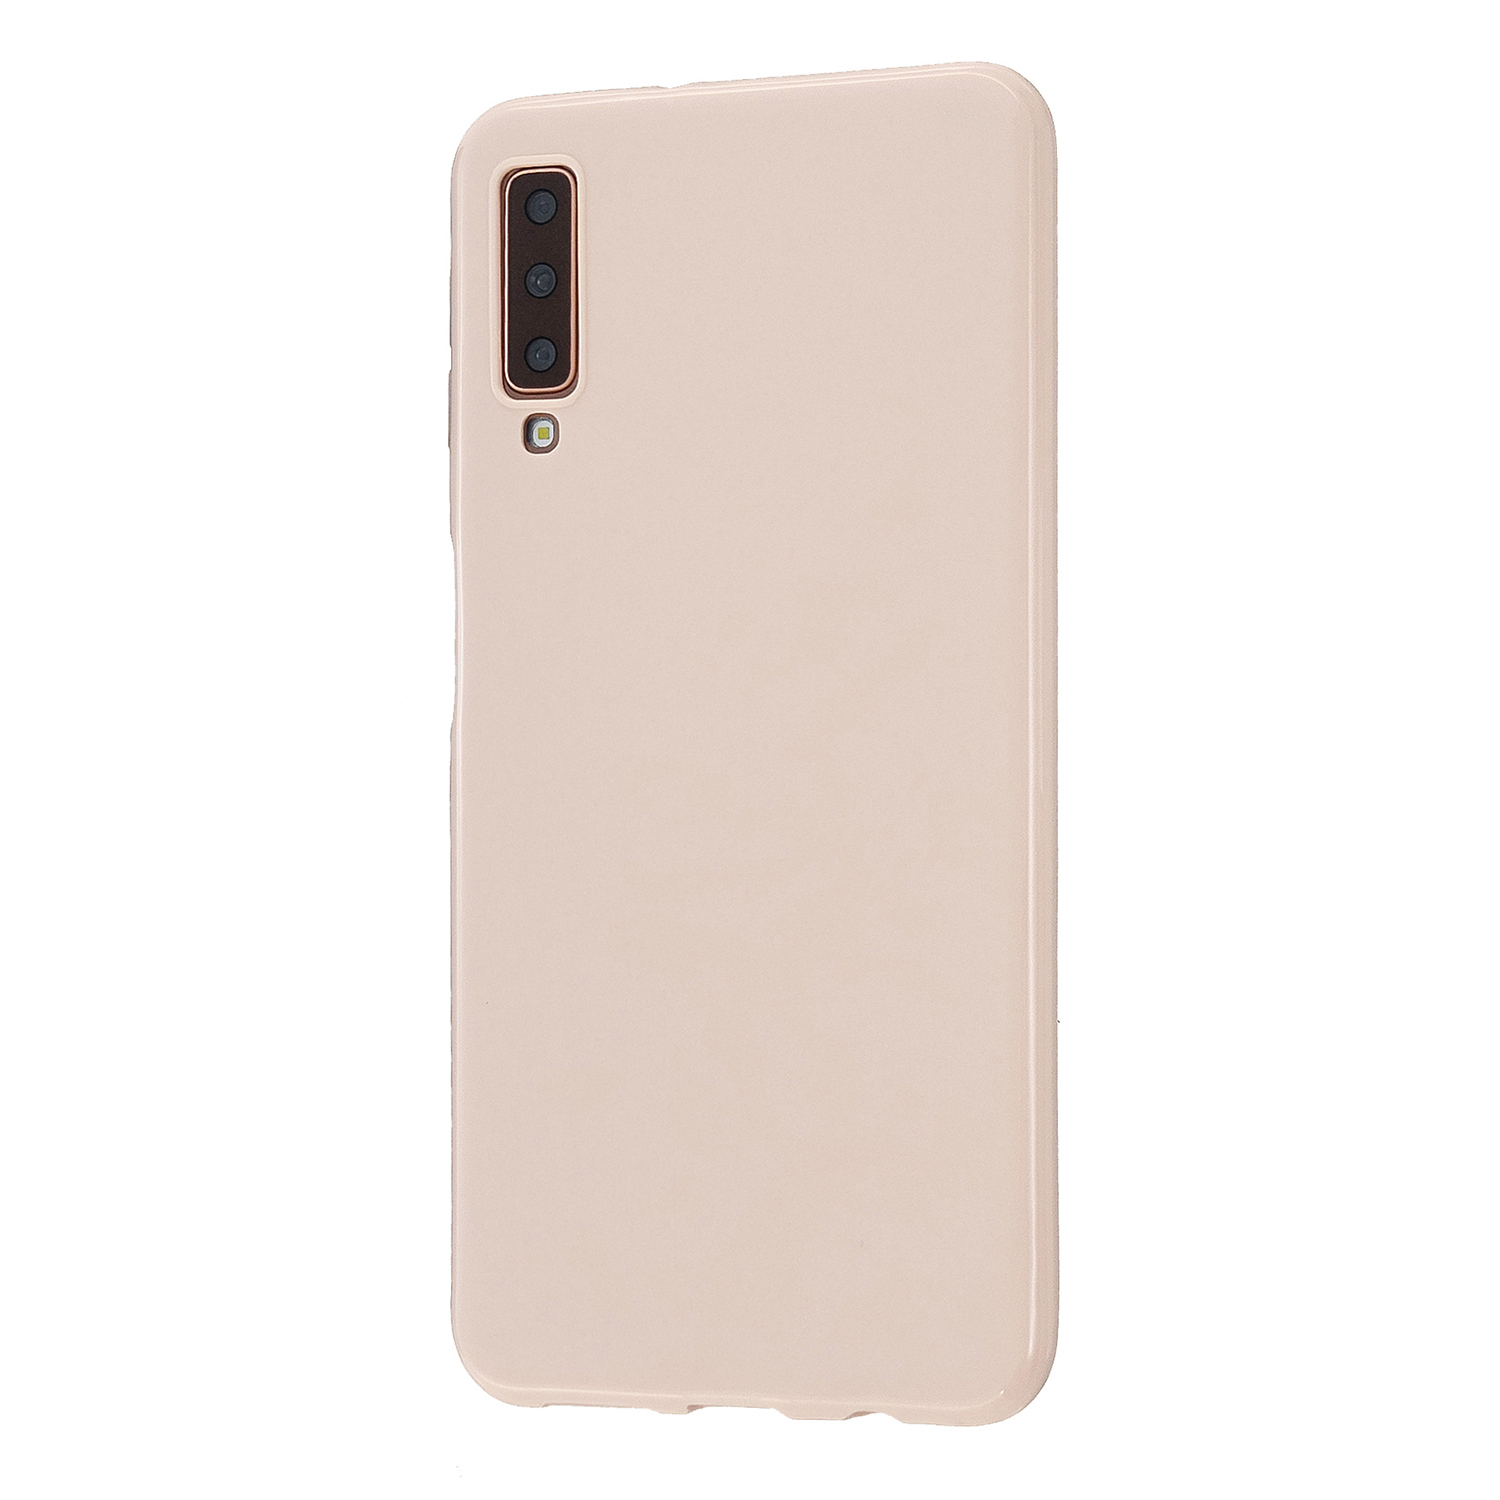 For Samsung A7 2018/A920 Smartphone Case Soft TPU Precise Cutouts Anti-slip Overal Protection Cellphone Cover  Sakura pink